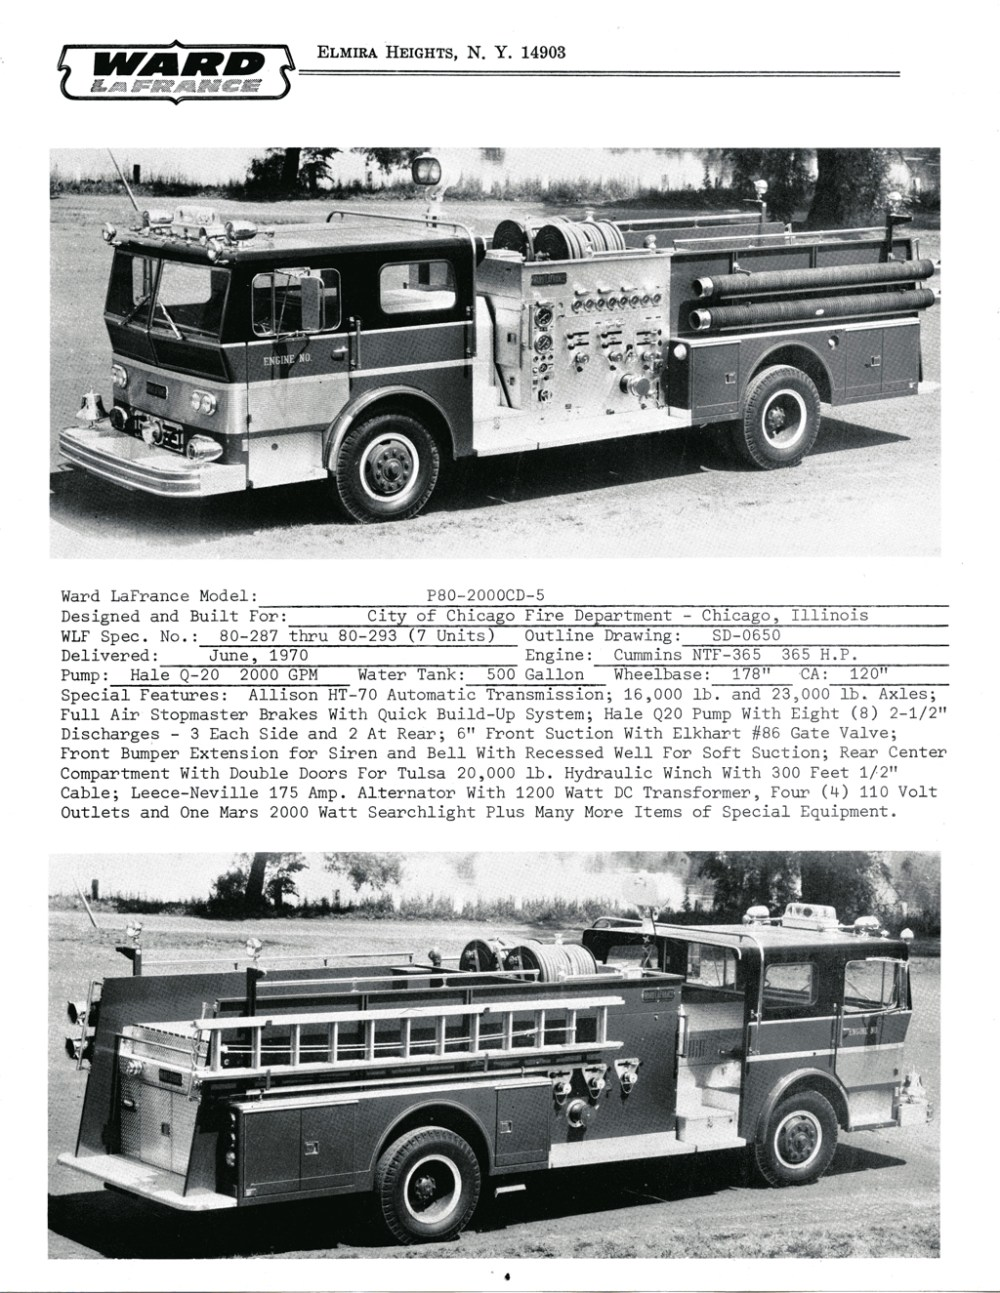 medium resolution of ward lafrance 1970 brochure with chicago engines